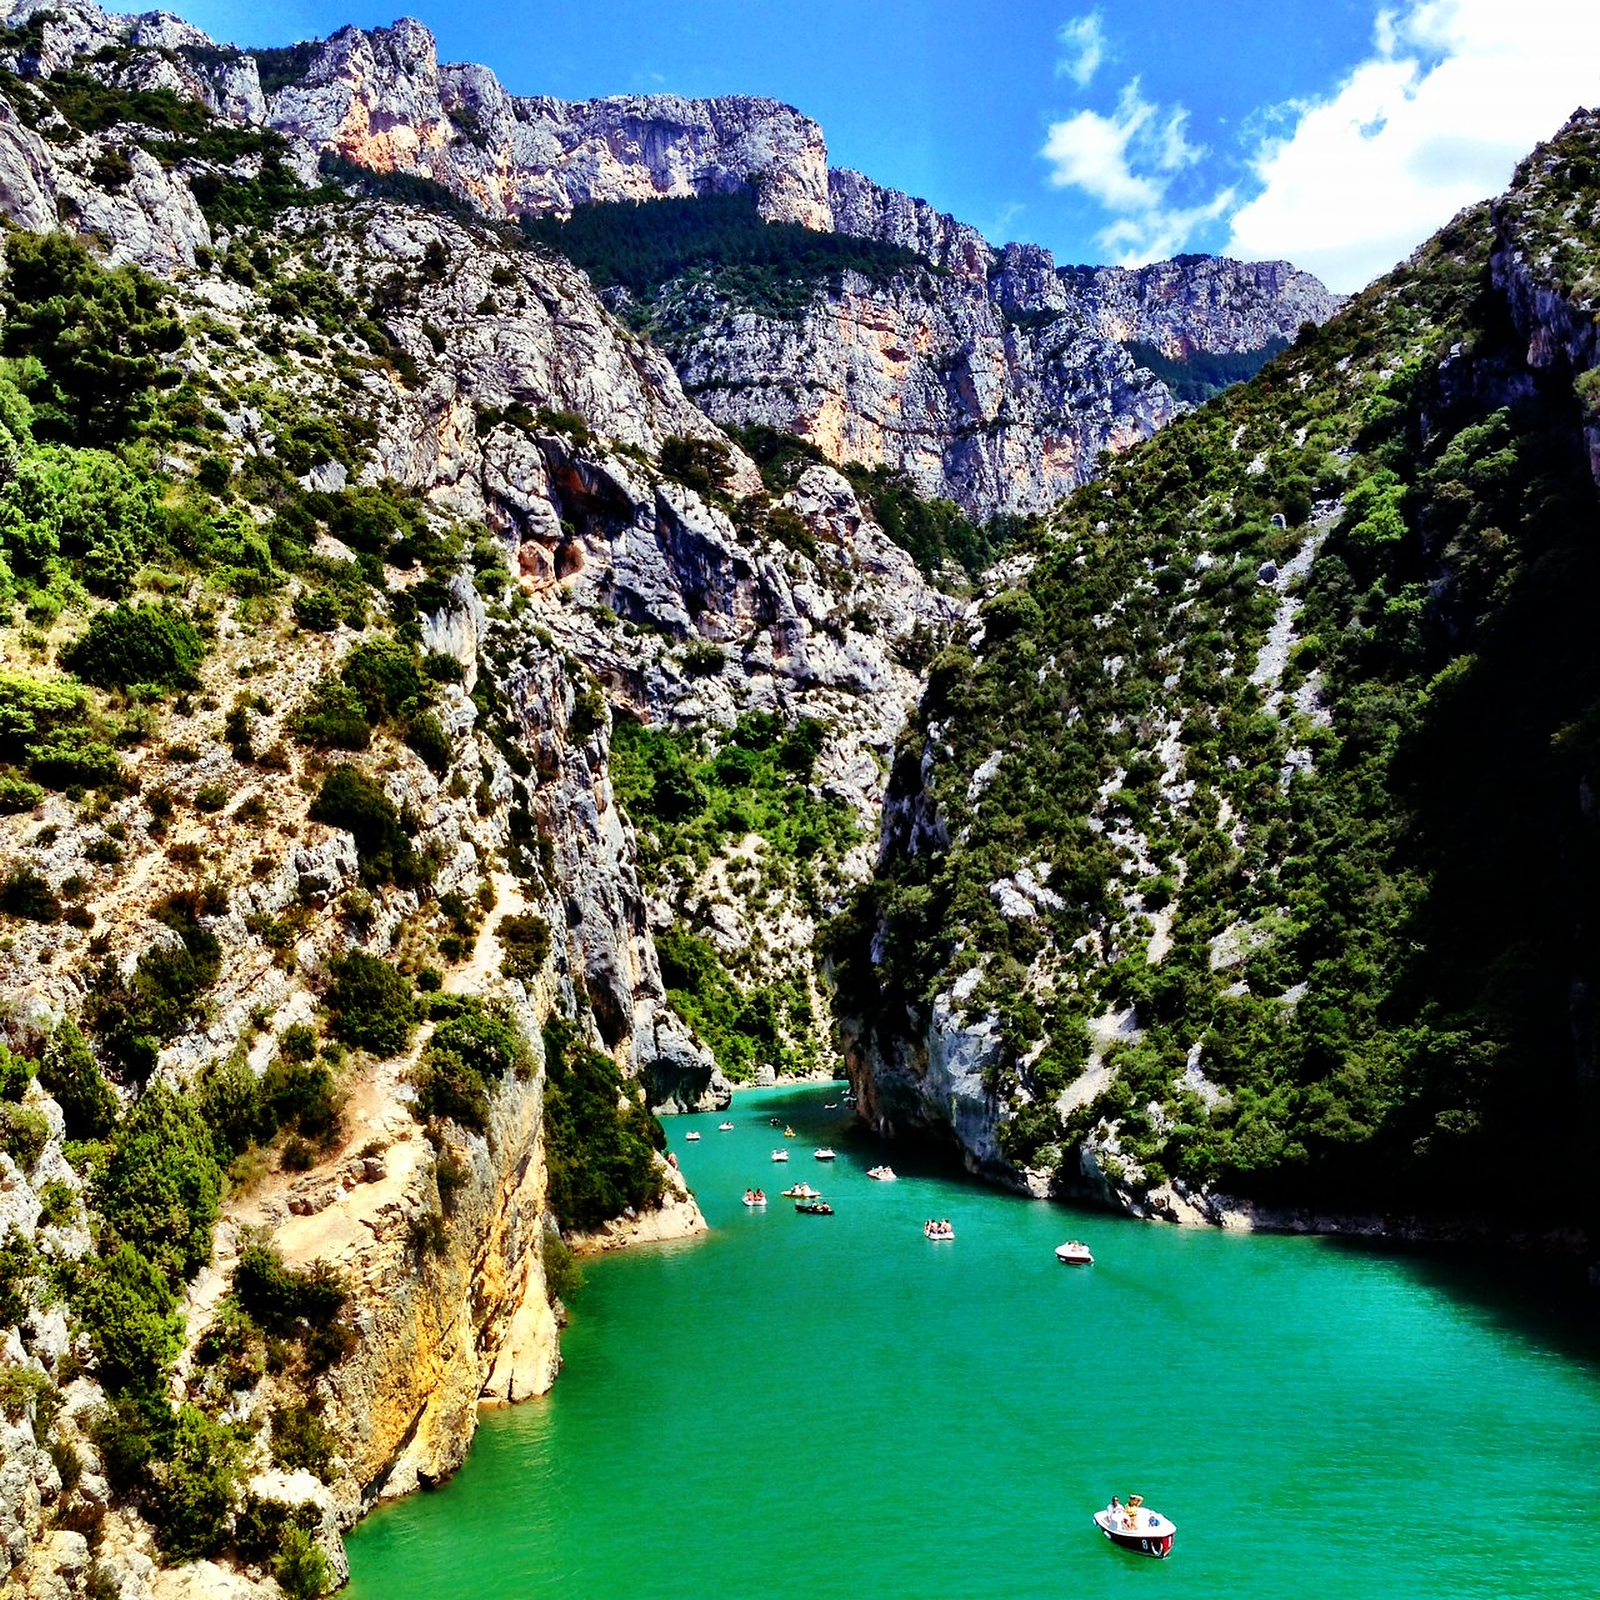 Stunning turquoise waters of the Gorges Du Verdon - France's best kept secret.